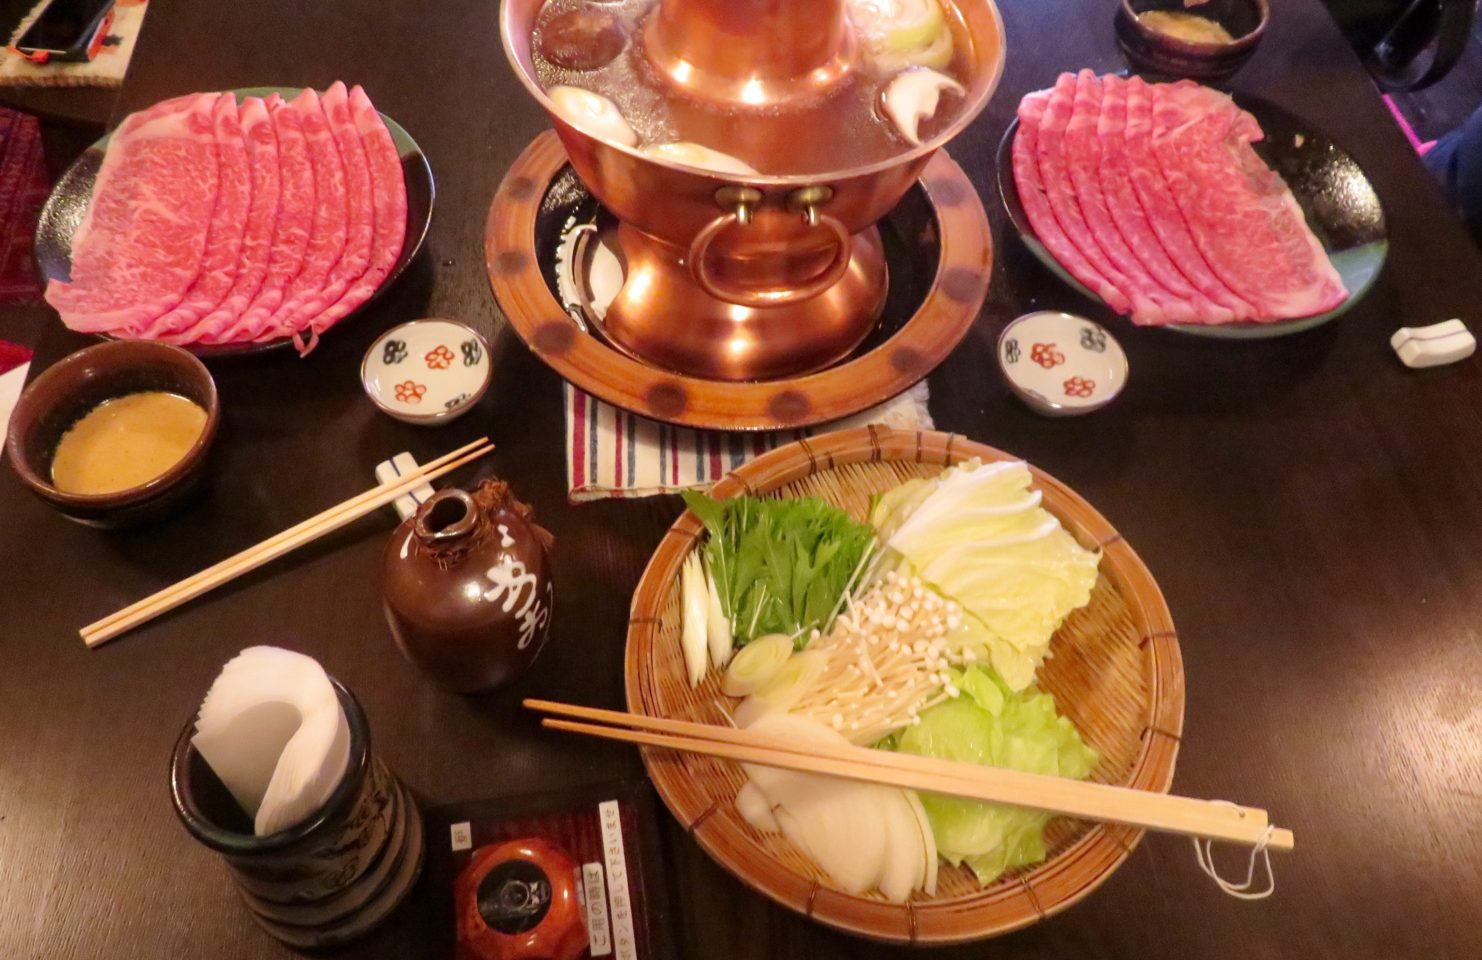 Japan Travel ~ Even food presentation highlights the constant search for beauty, quality and perfection